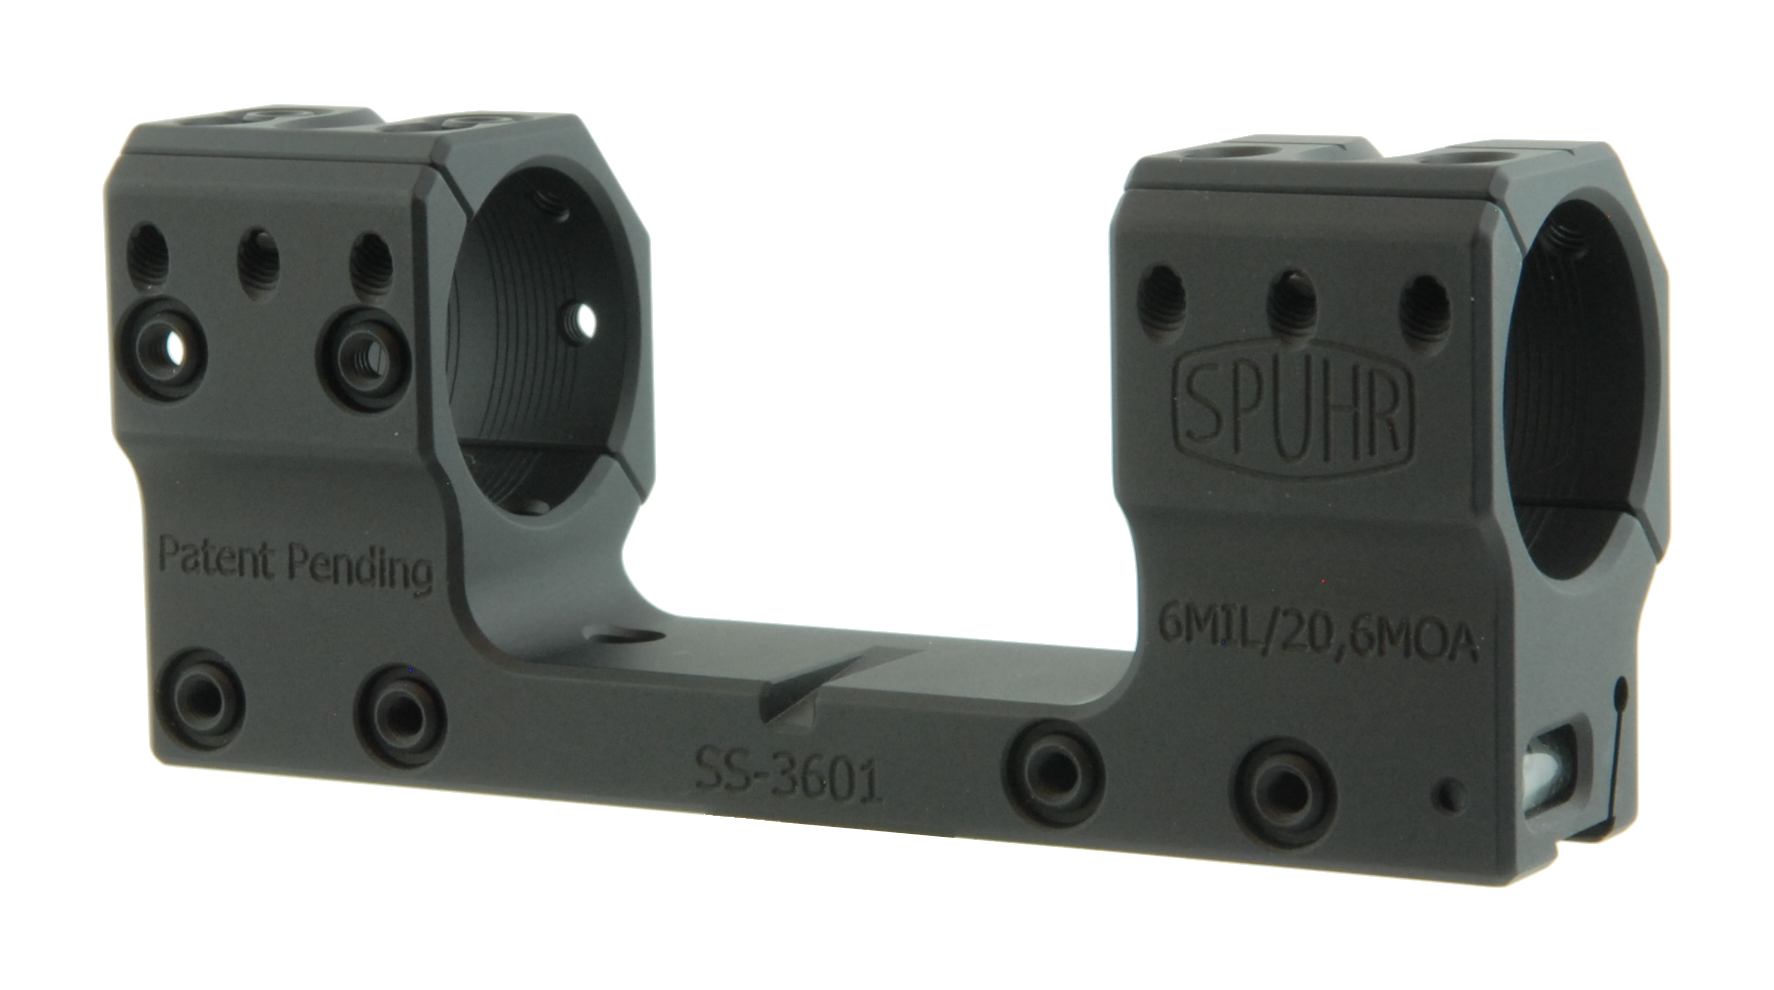 "SS-3601 Scope Mount Ø30 H30mm/1.181"" 6MIL Sauer"